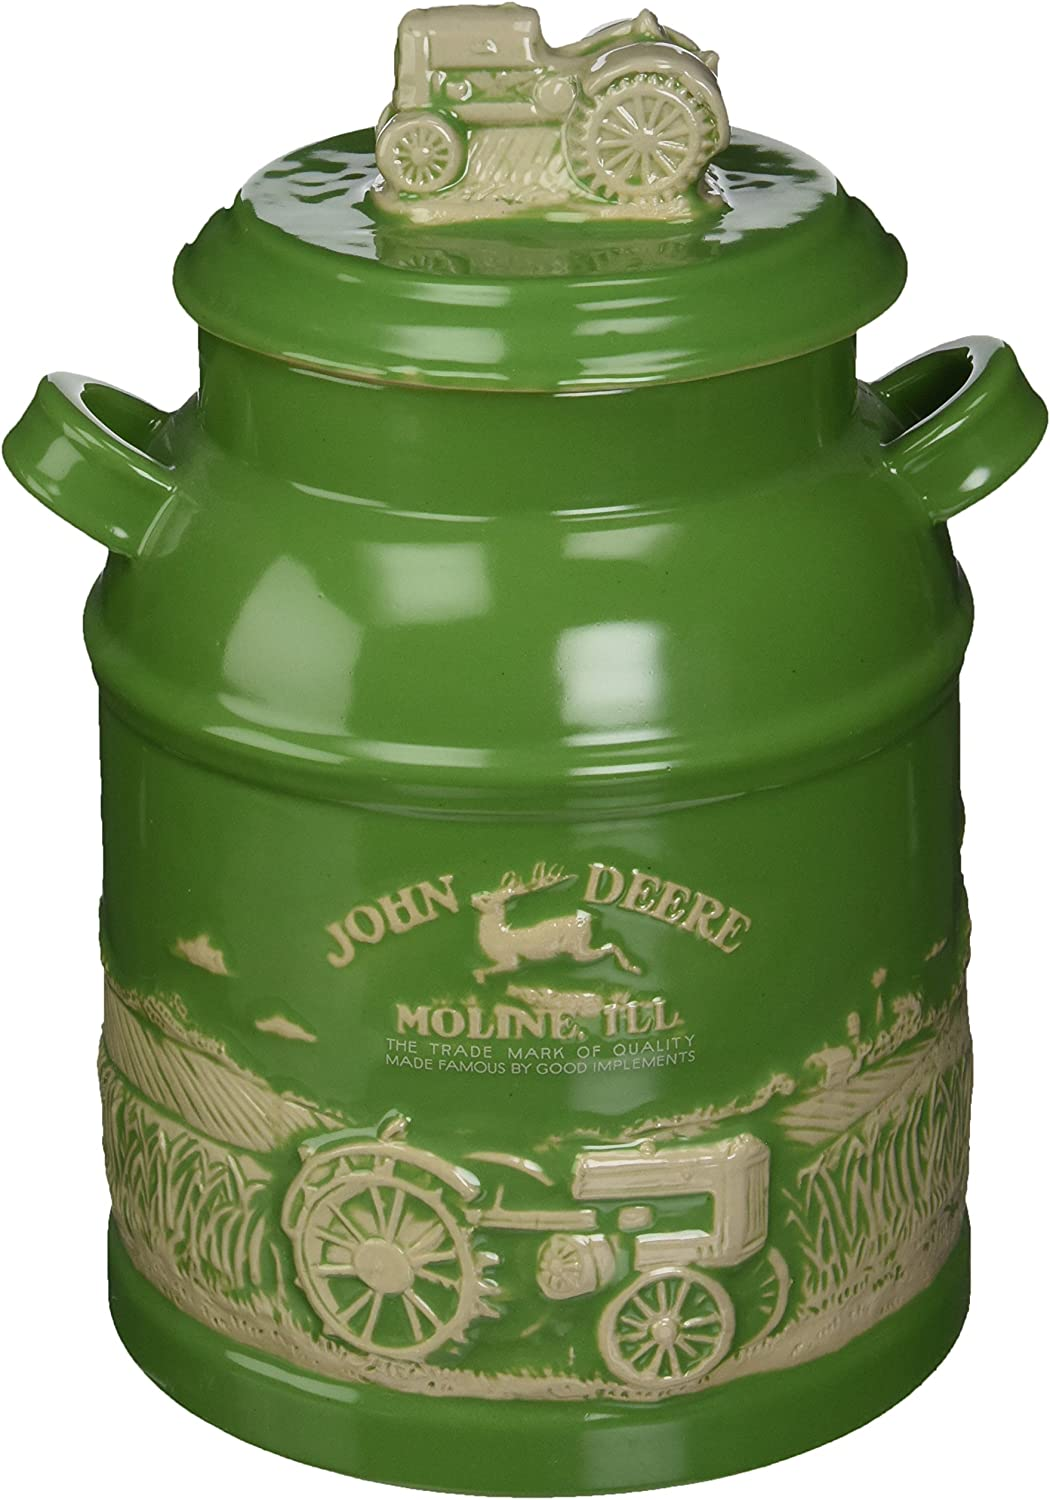 M. CORNELL IMPORTERS 6934 John Deere Milk Can Cookie Jar